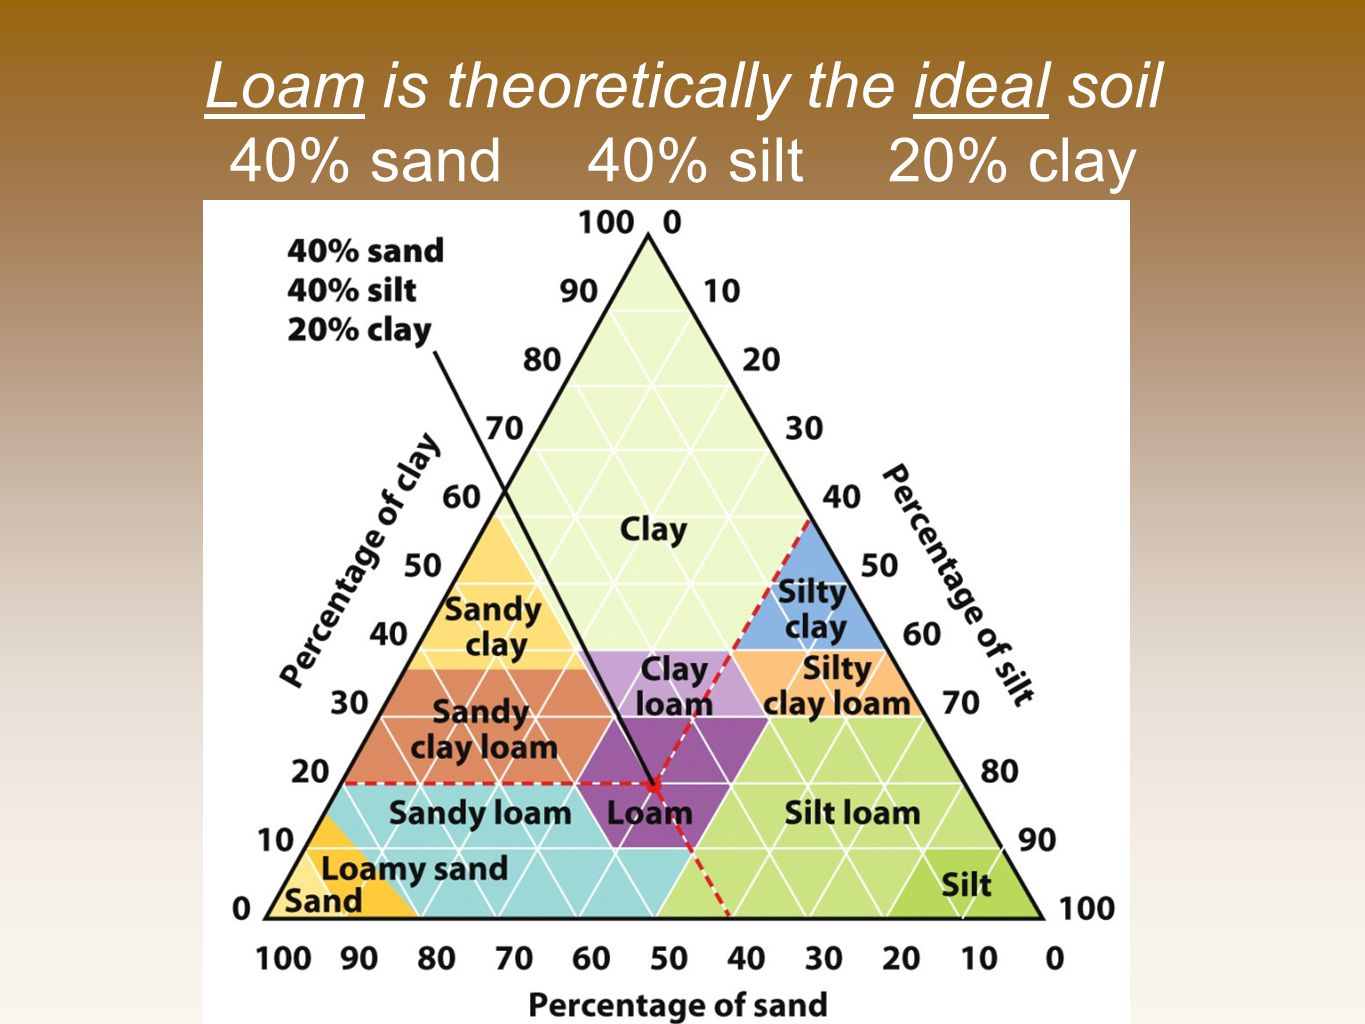 Loam is theoretically the ideal soil 40% sand 40% silt 20% clay